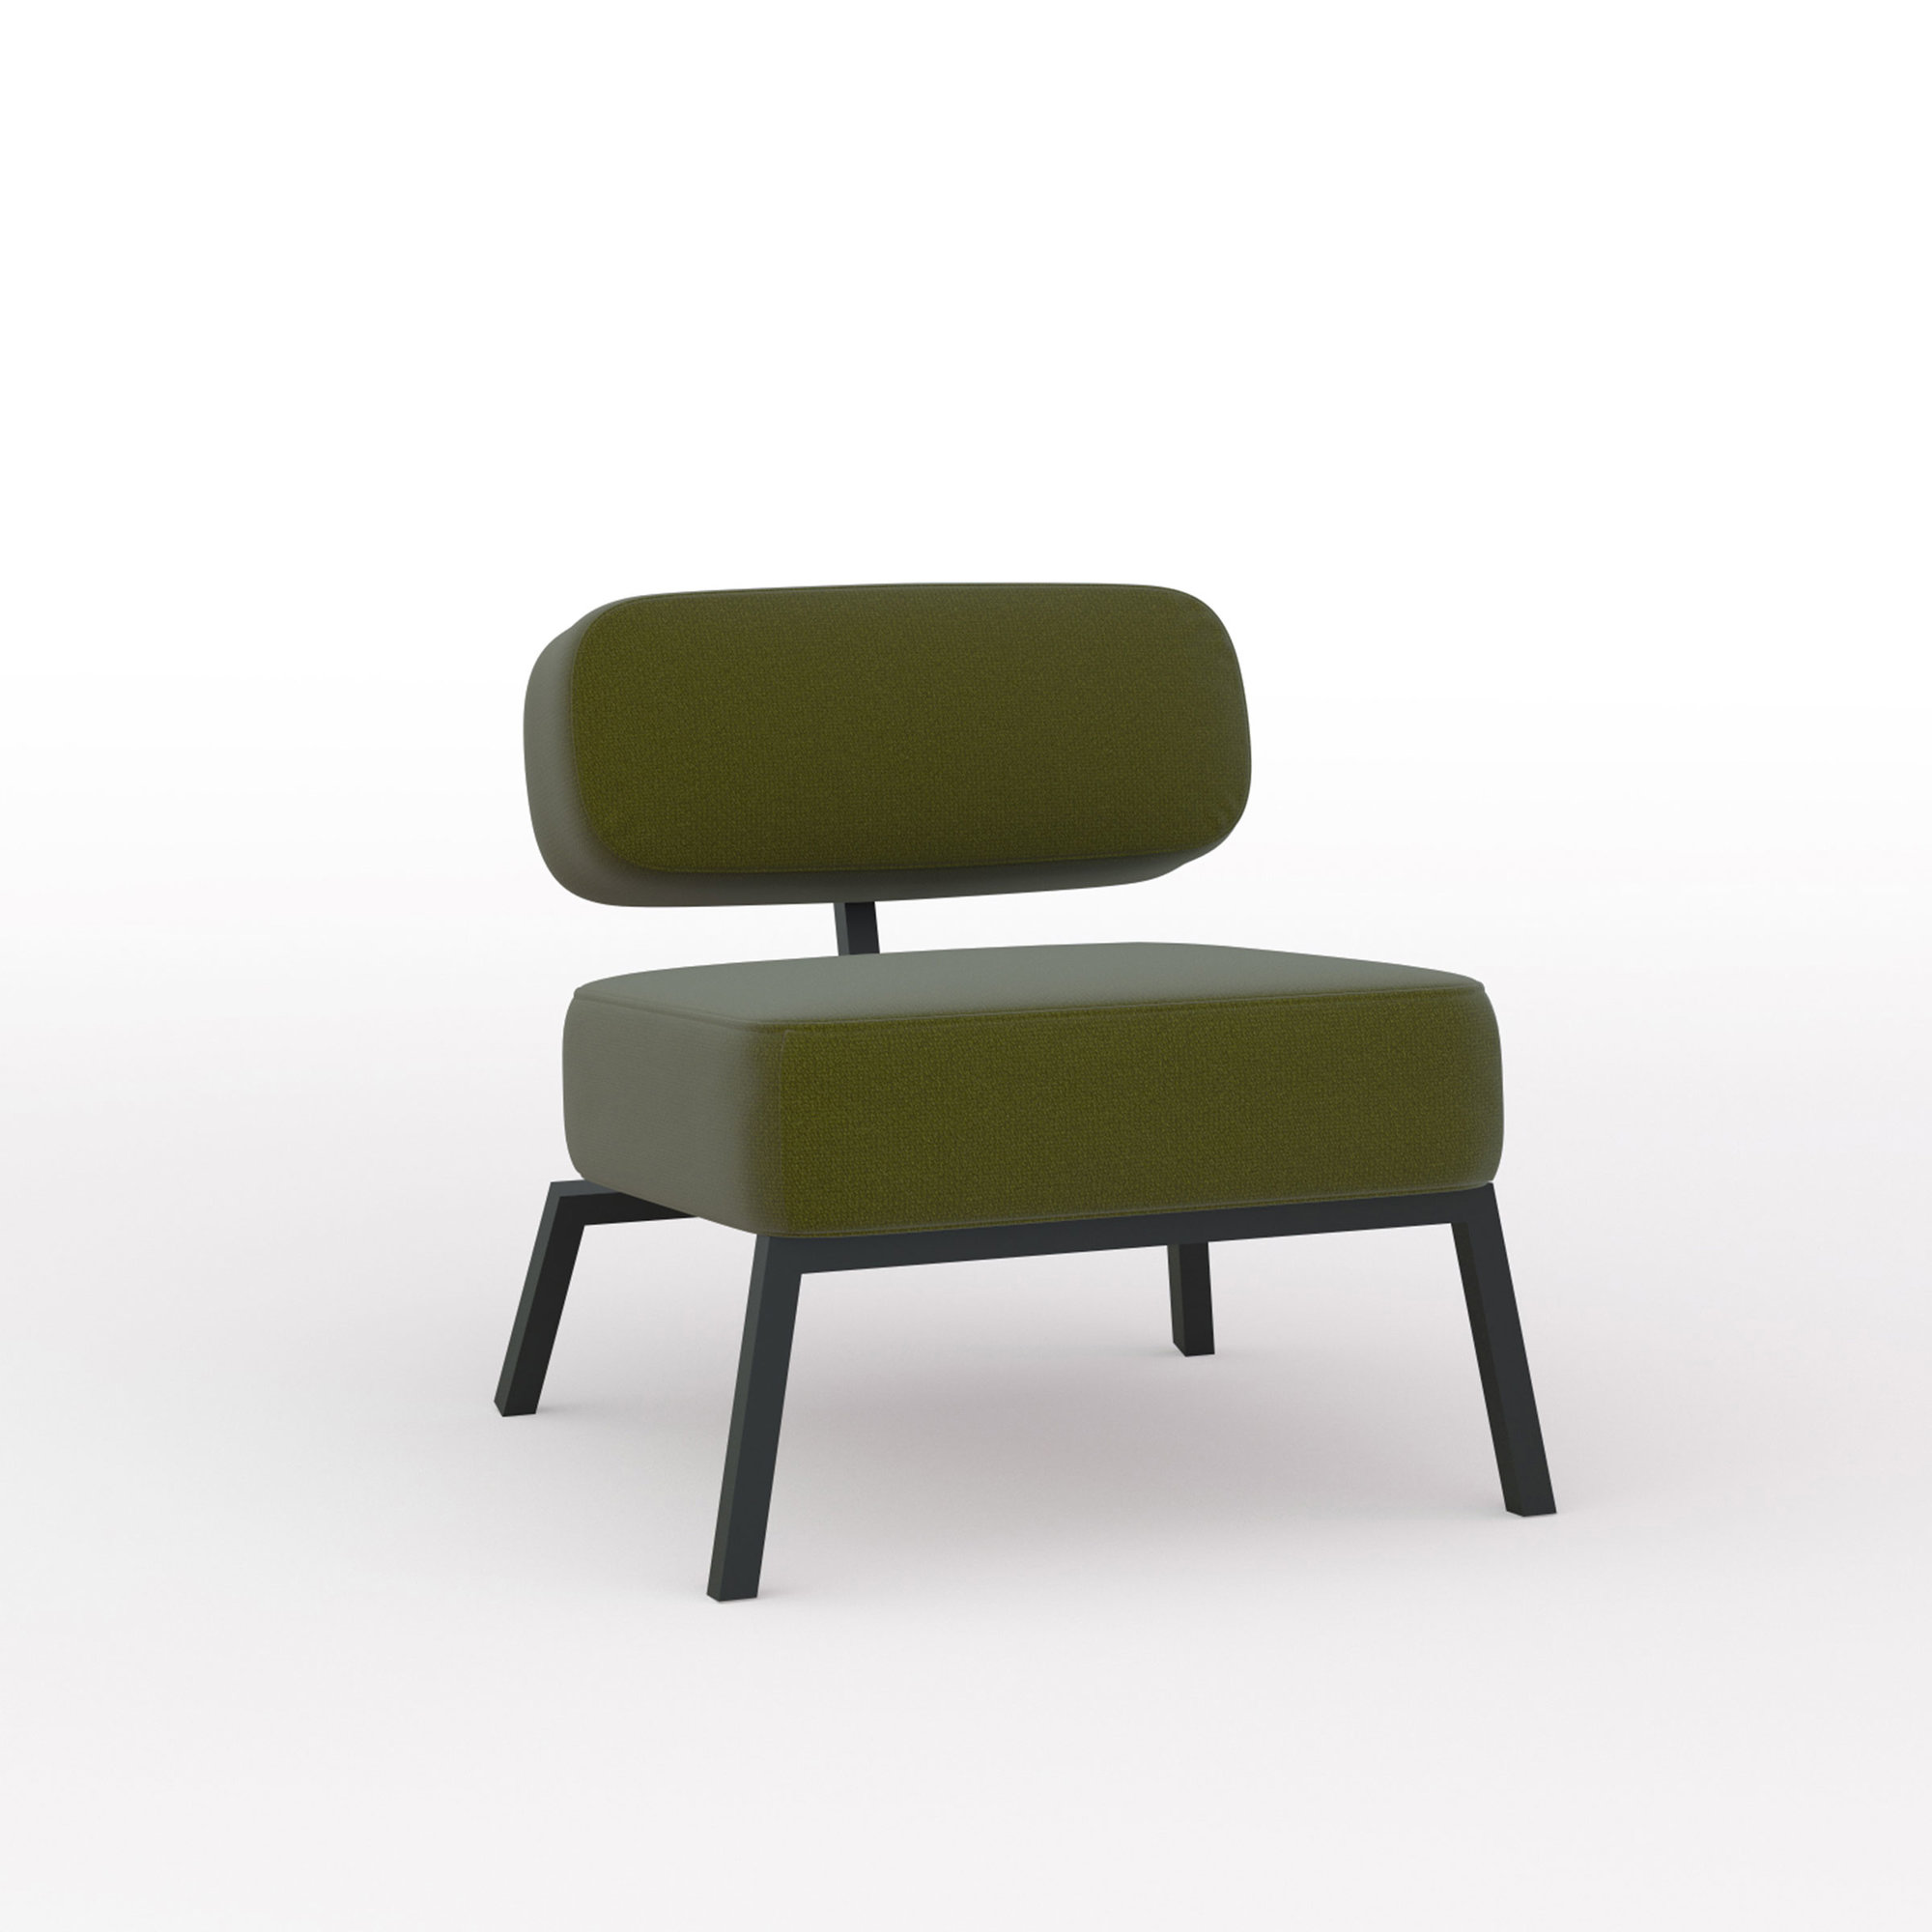 Design zitbank | Ode lounge chair 1 seater without armrest  steelcut2 985 | Studio HENK | Listing_image